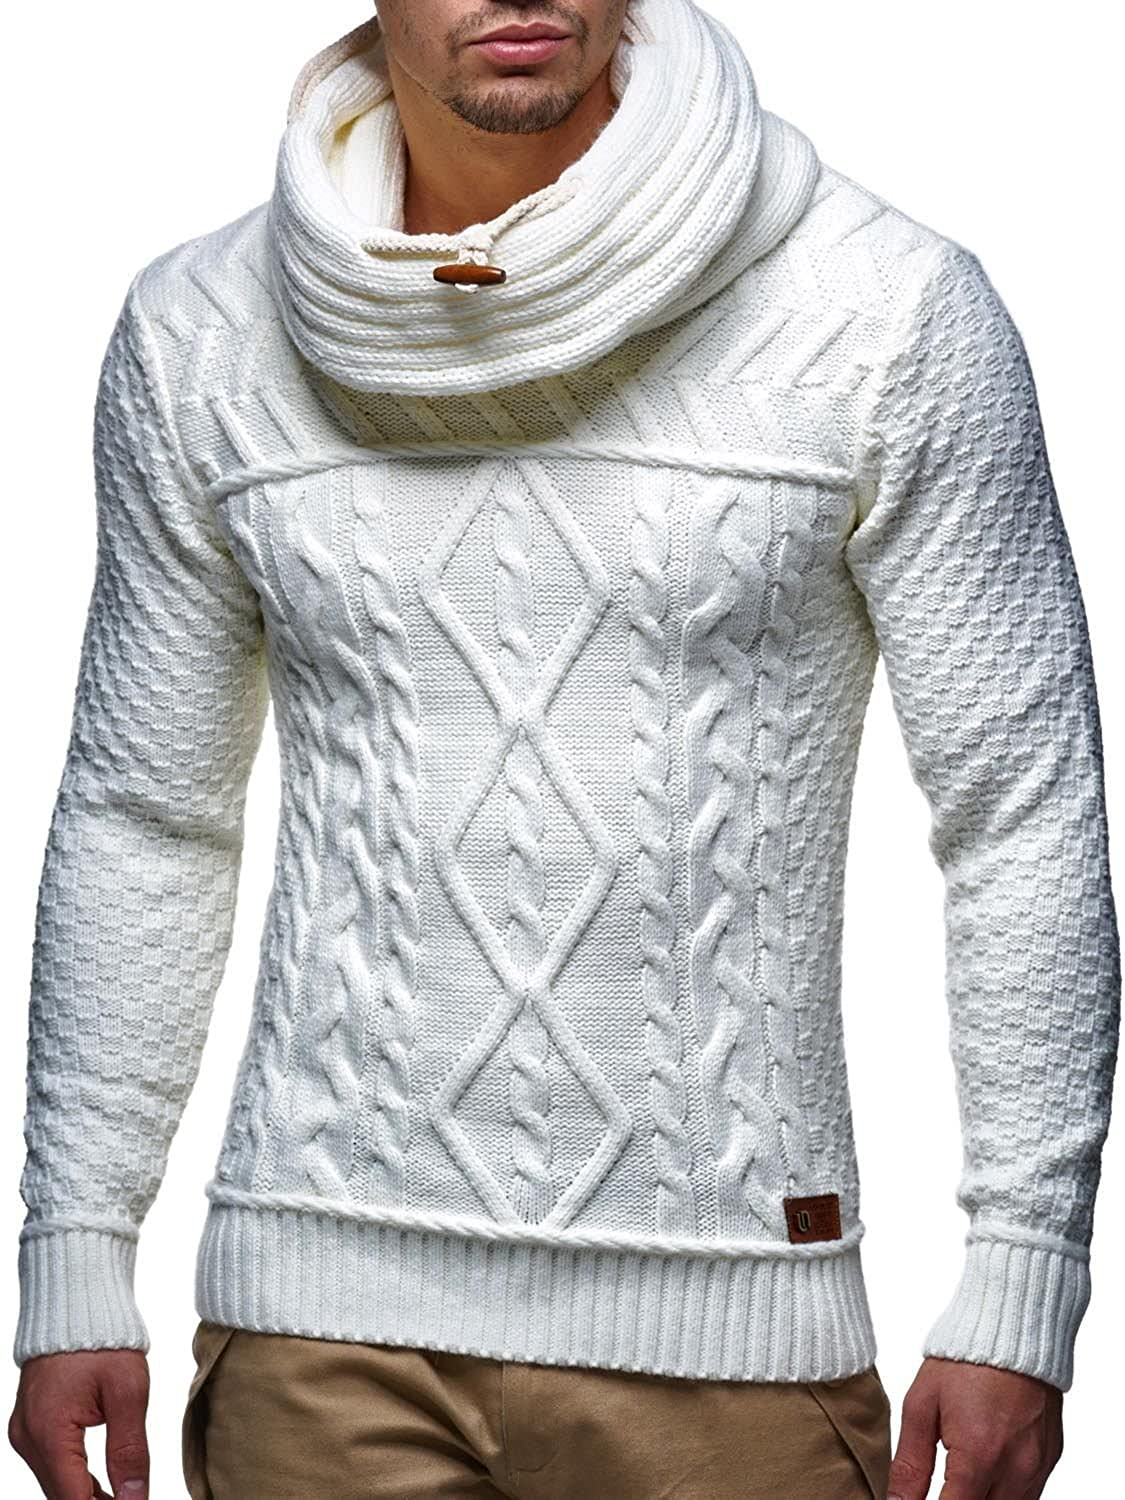 Knit GIORGIO white - thick winter